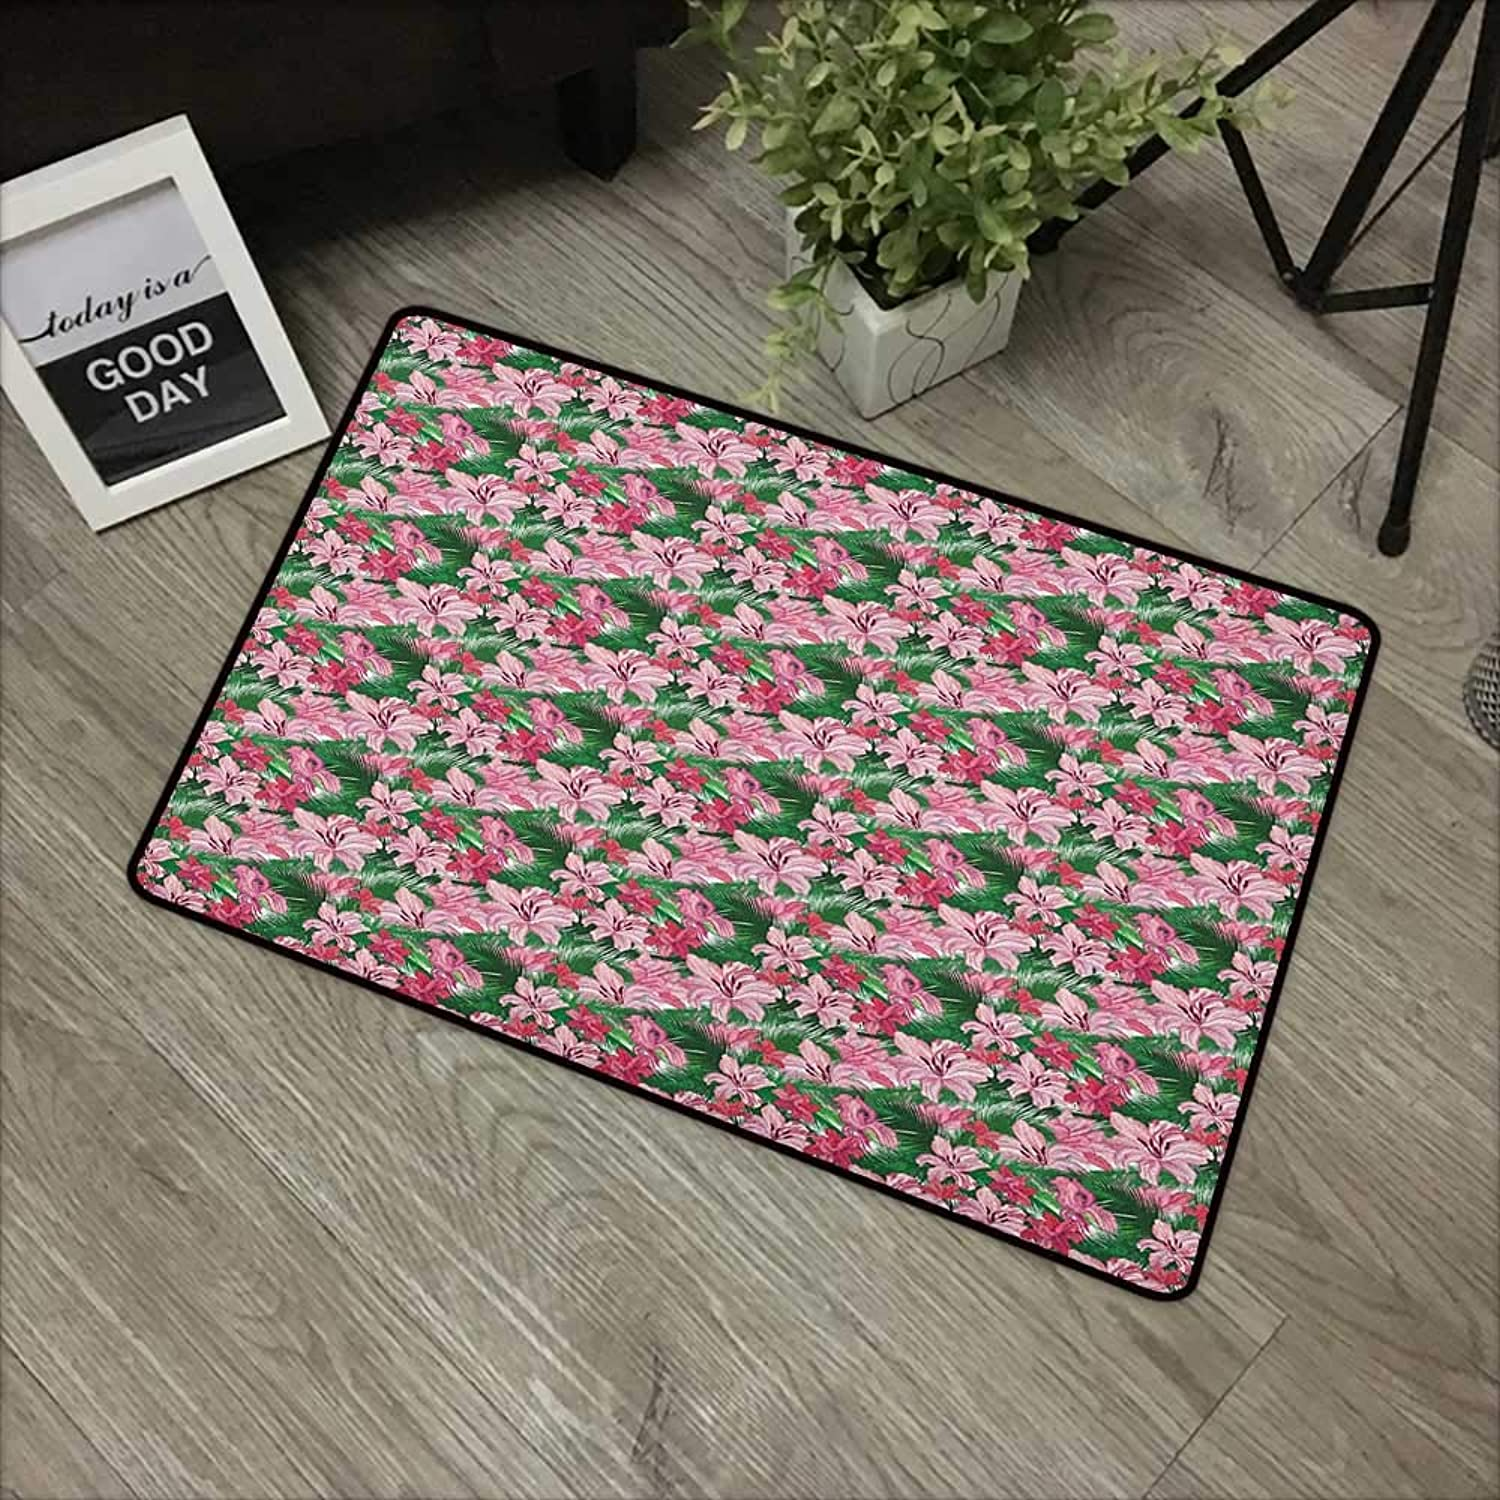 Living room door mat W35 x L59 INCH Jungle,Lush Growth of the Exotic Hawaiian Island Blossoms in Pink Shades Spring in Paradise, Multicolor Easy to clean, no deformation, no fading Non-slip Door Mat C